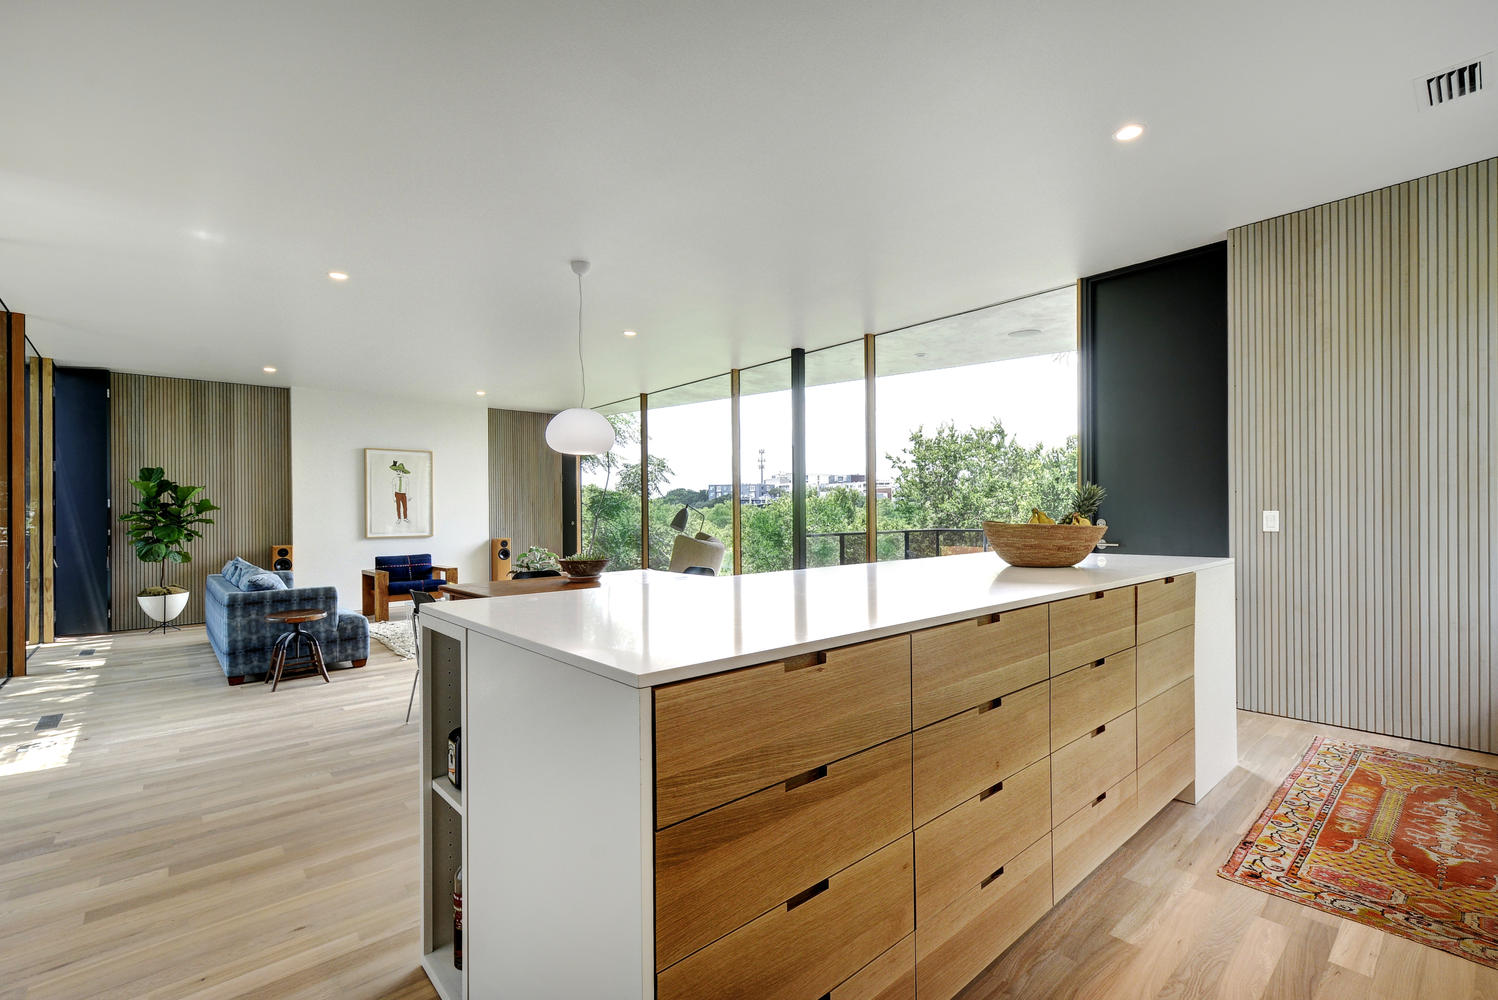 Daily dream home south fifth street for Kitchen design 60035